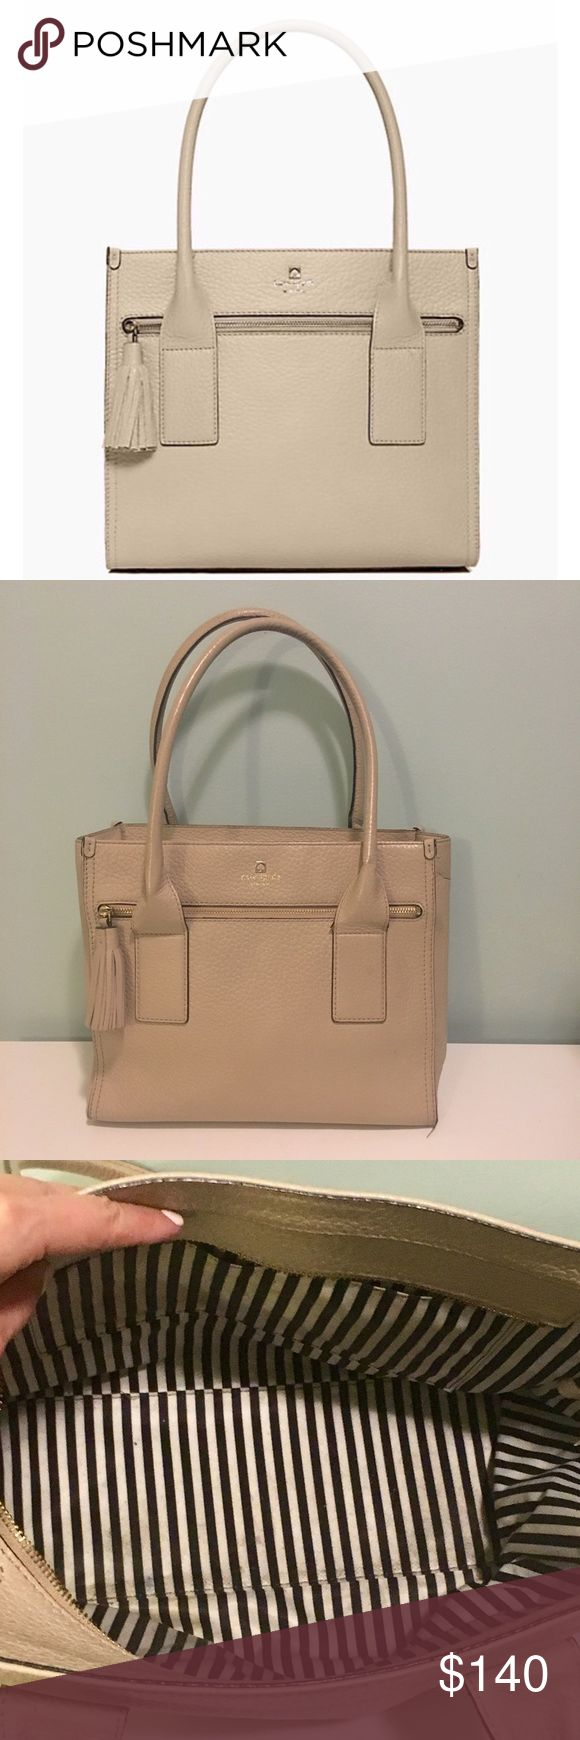 """Kate Spade Southport Avenue Cameron Leather Tote Smart in structure and iconic in style. Great bag for work! Good condition. Keywords: tan, nude, neutral, beige, purse, bag, career, shoulder bag, tassel, structure, structured. Features Tote bag in pebble embossed cowhide with matching trim gold printed kate spade new york signature 14-karat light gold plated hardware Front zip pocket with tassel zipper pull custom woven bookstripe lining with zip & slip pockets. 12''h x 12.9''w x 5.5''d 9""""…"""